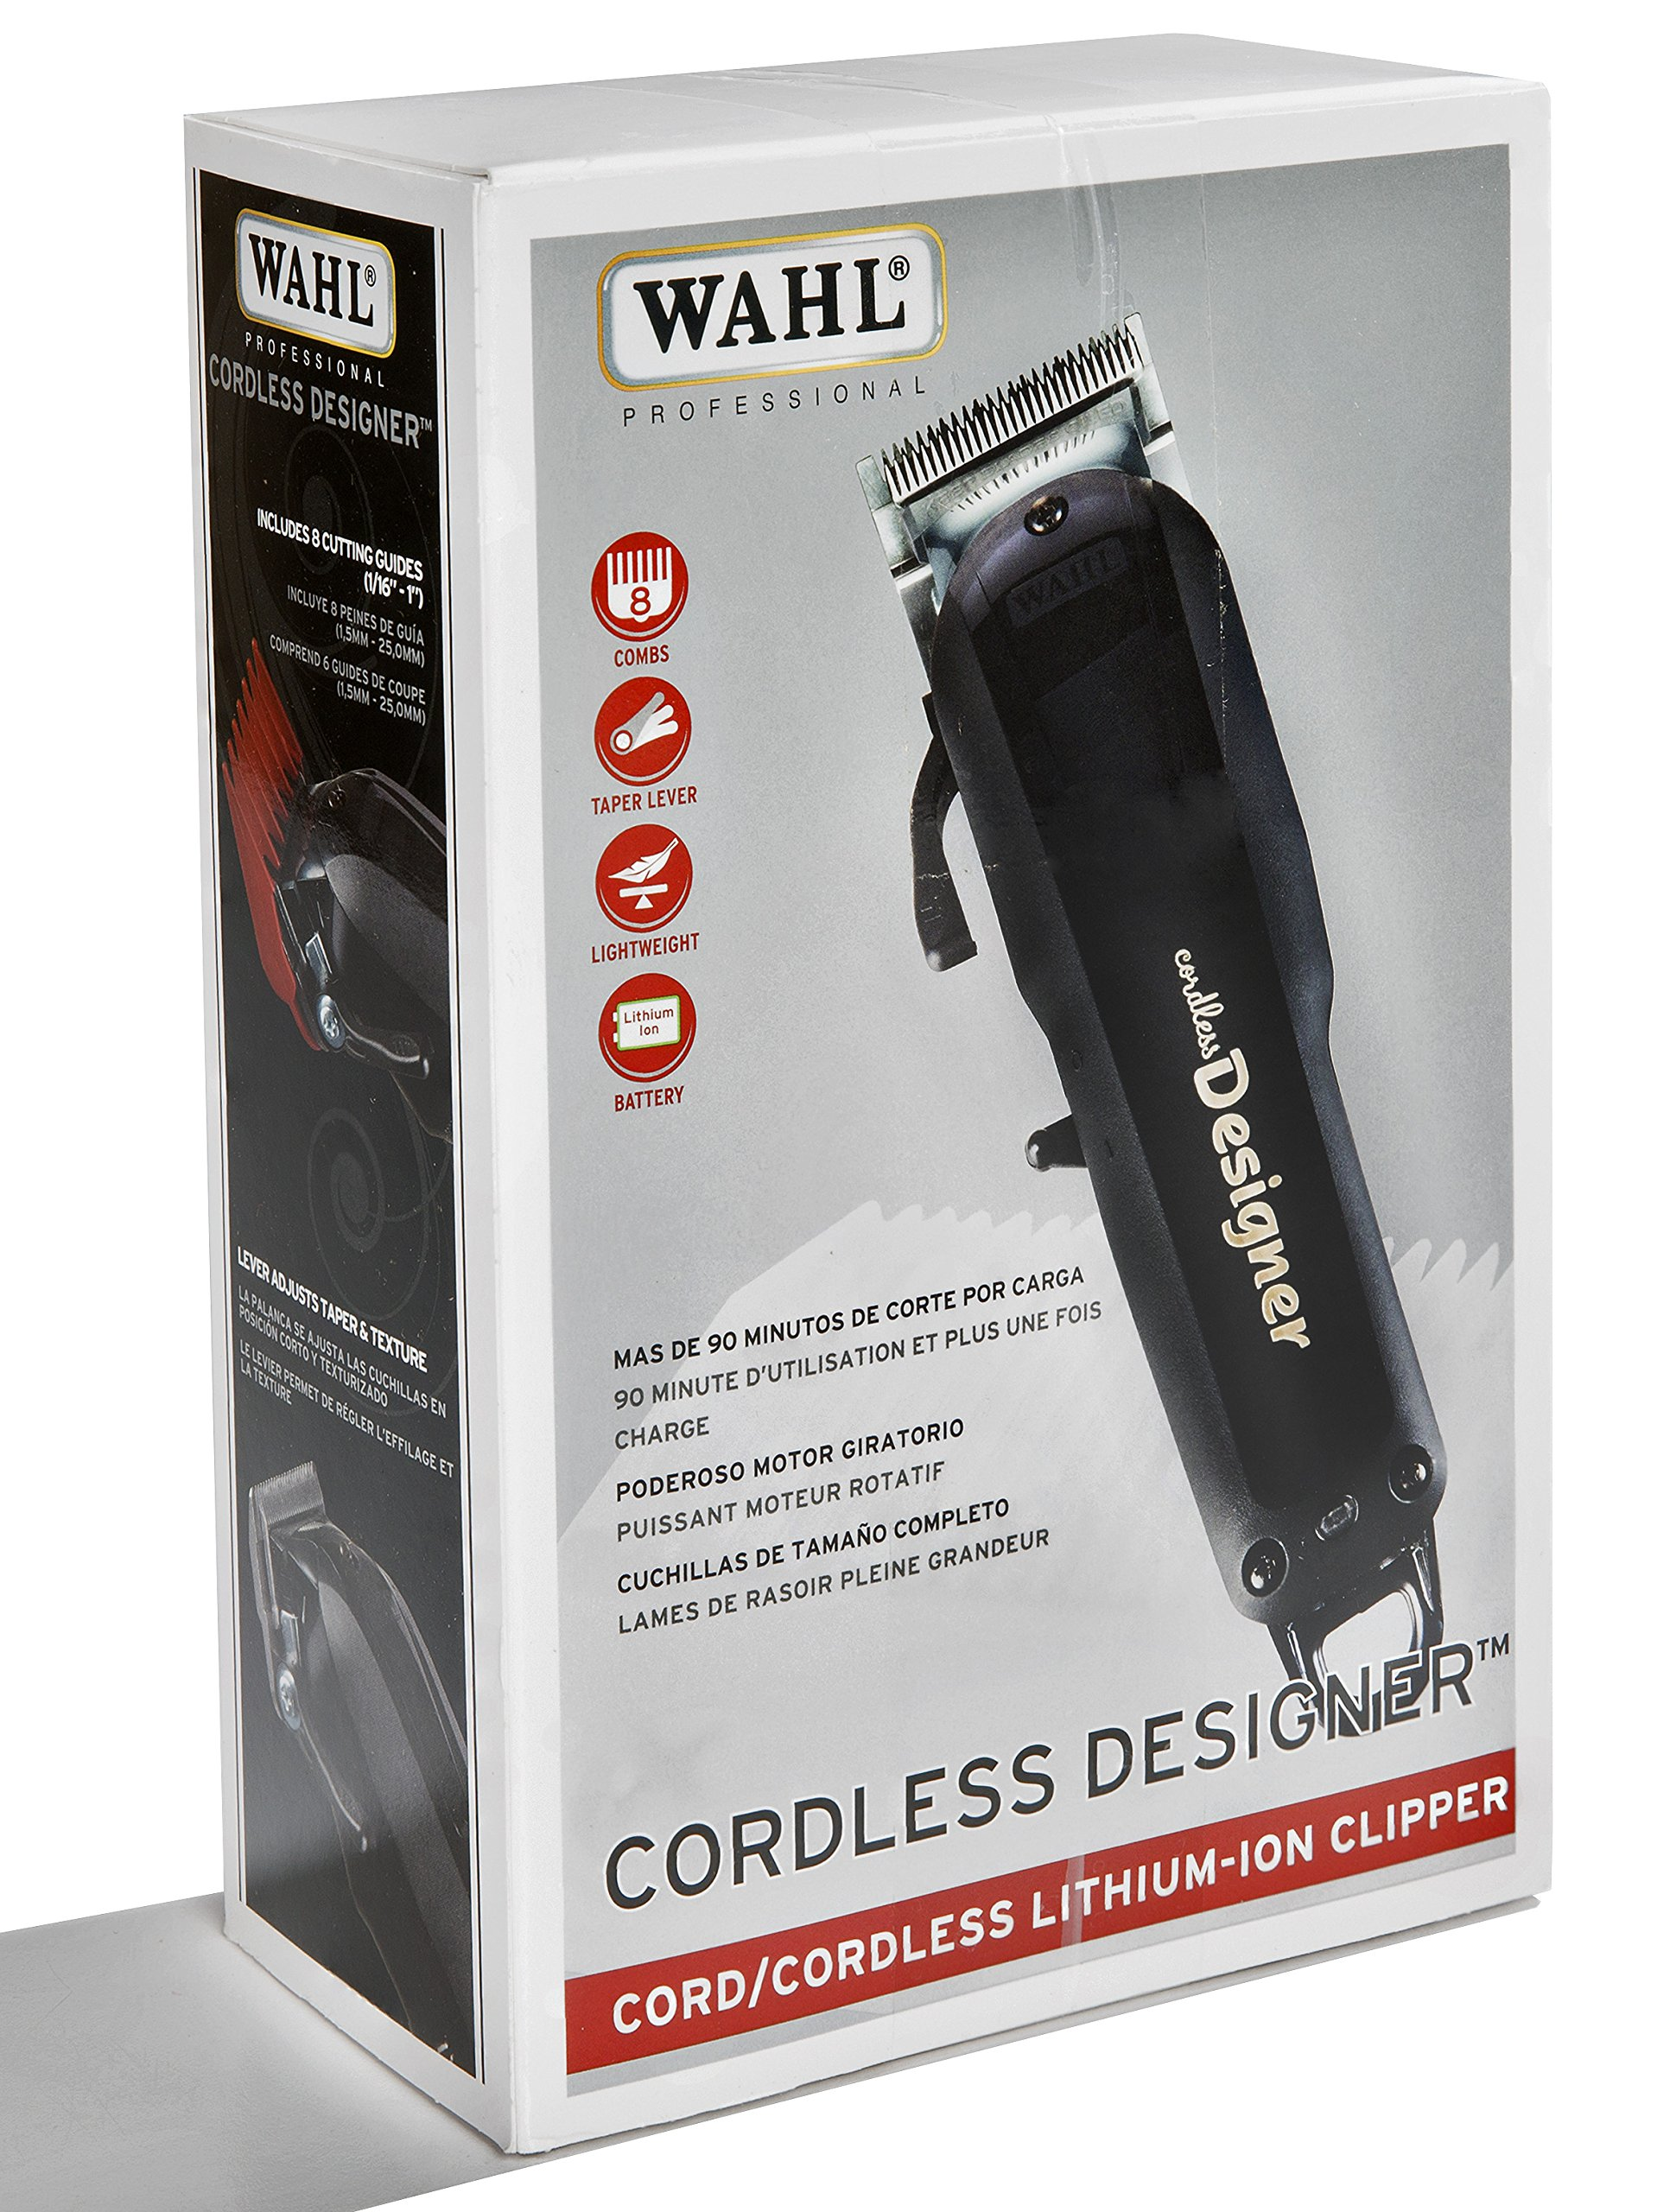 Wahl Professional Cordless Designer Clipper #8591 – 90 Minute Run Time – Accessories Included by Wahl Professional (Image #2)